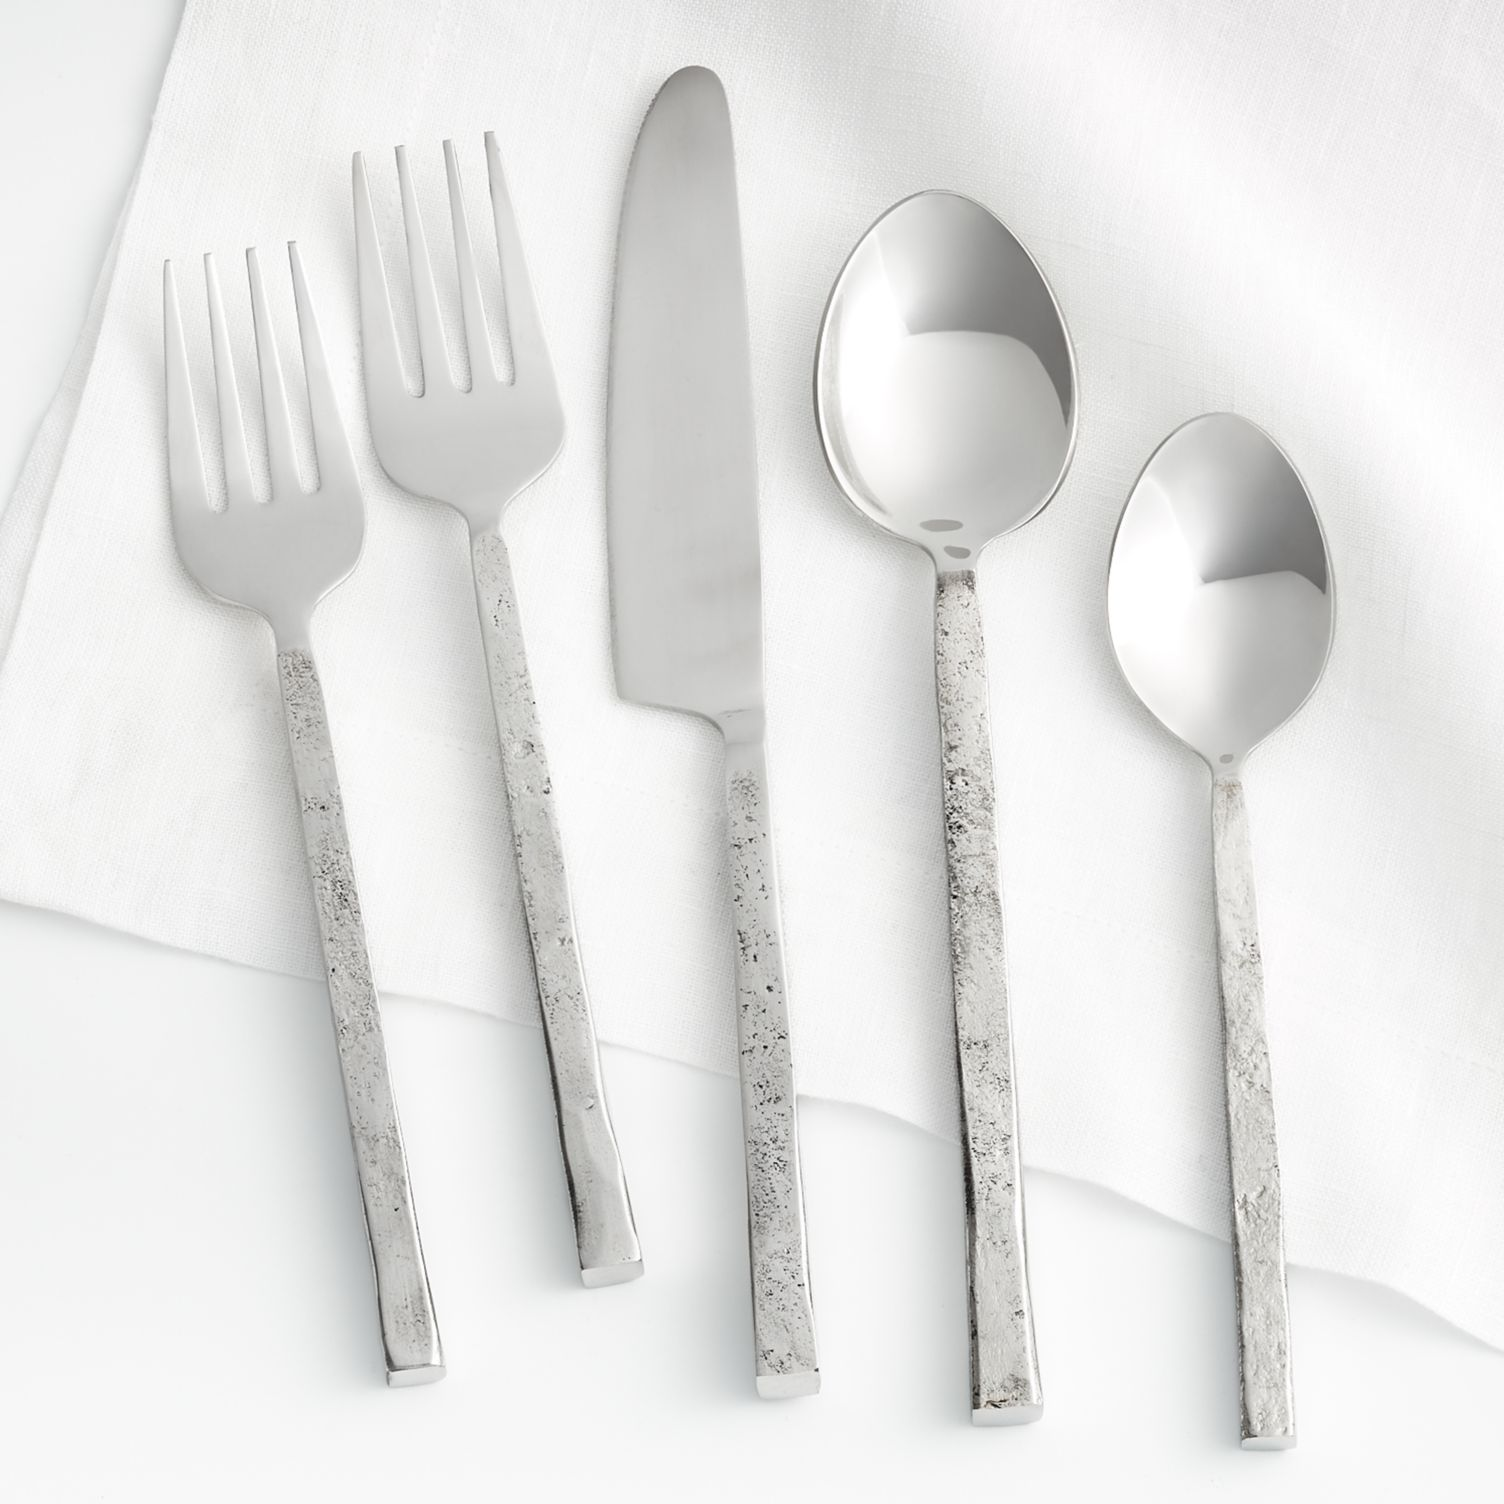 Rustic flatware with hand-forged handles